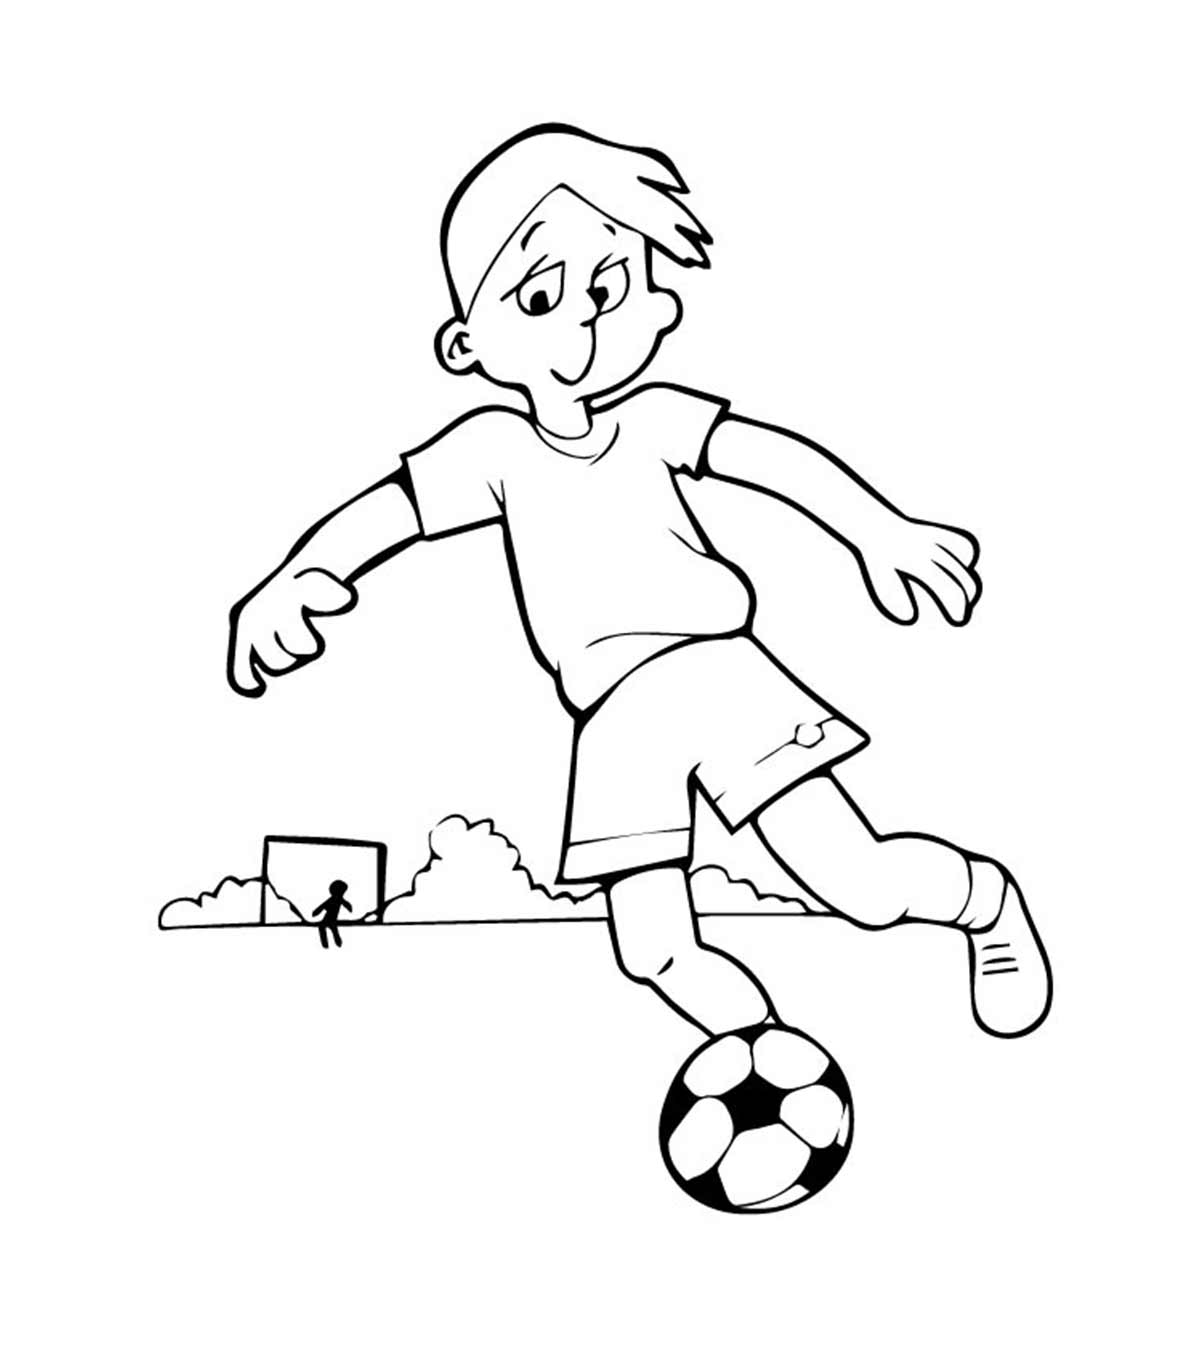 Coloring page 2014 FIFA World Cup : Fuleco 2 | 1350x1200